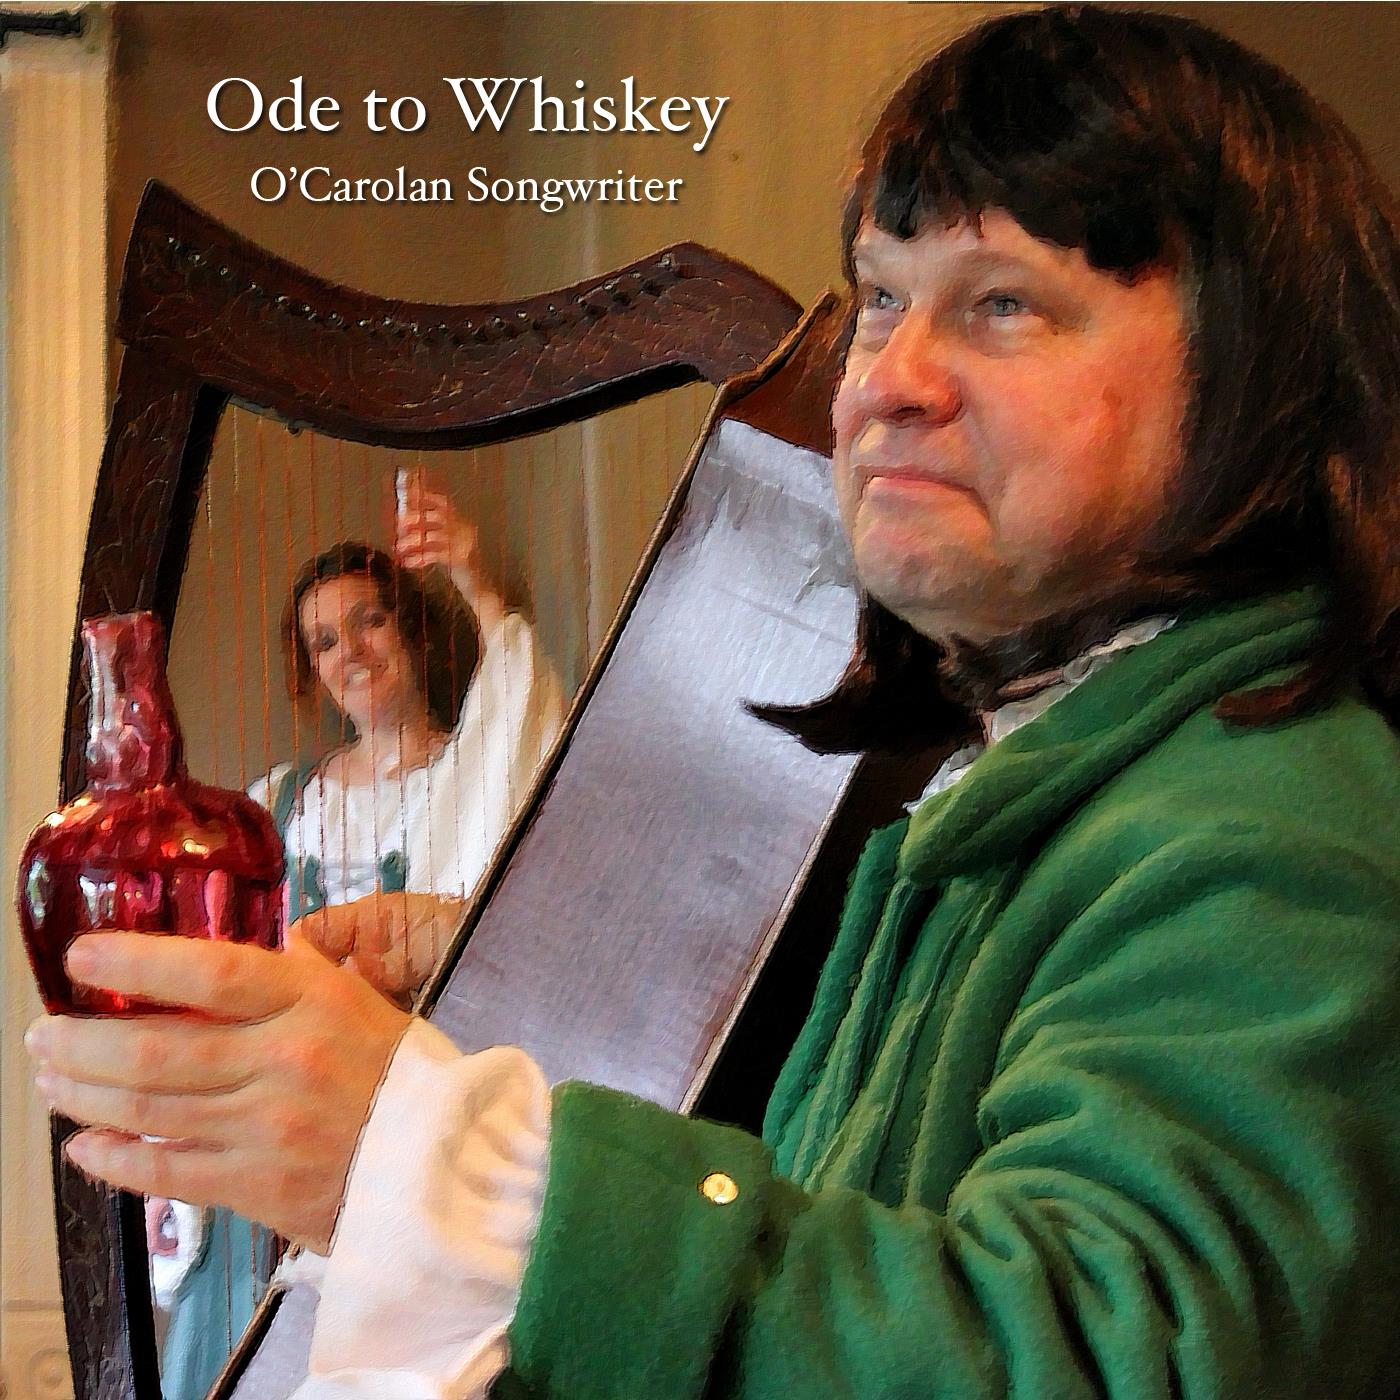 Ode to Whiskey